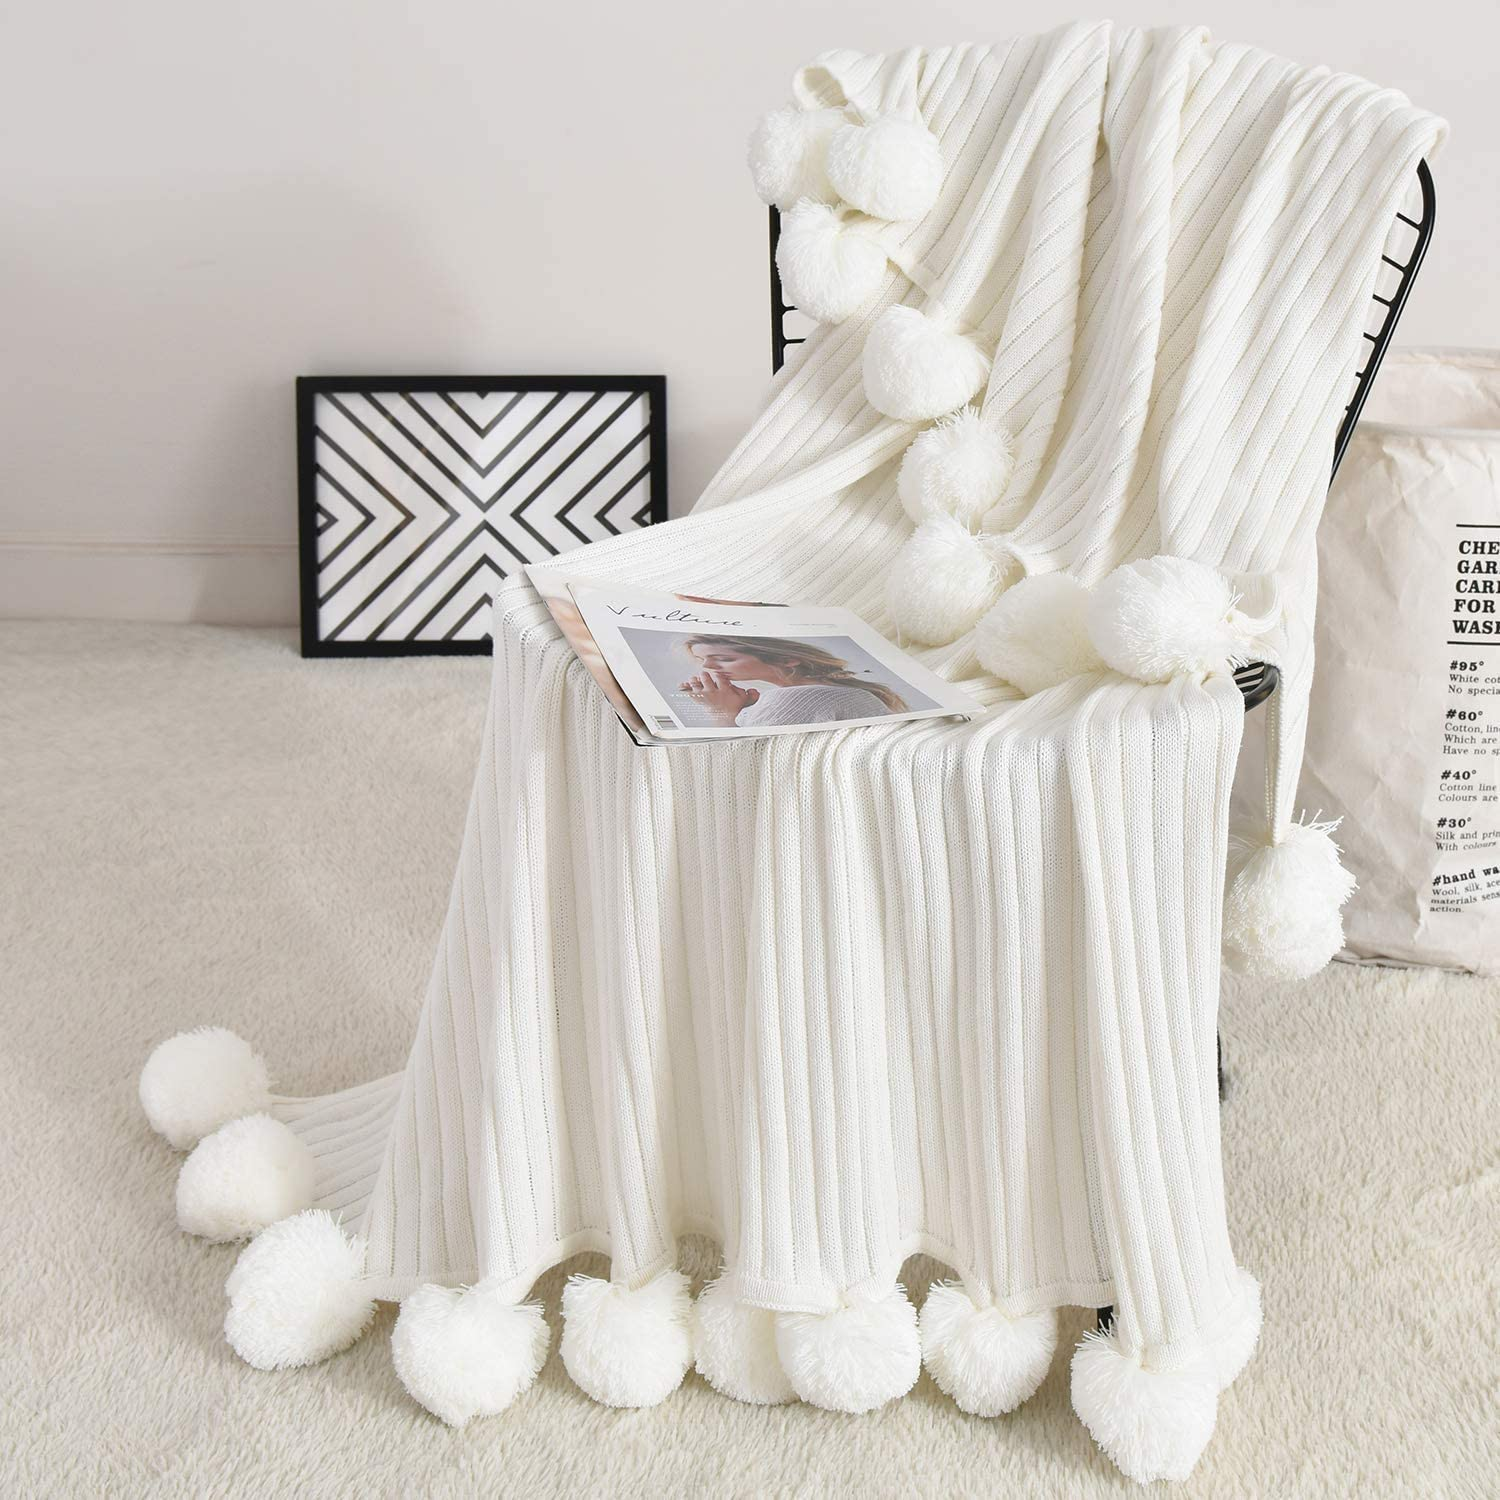 Fomoom Pom Throw Blanket Tas with Pompom Knit New Free NEW before selling Shipping